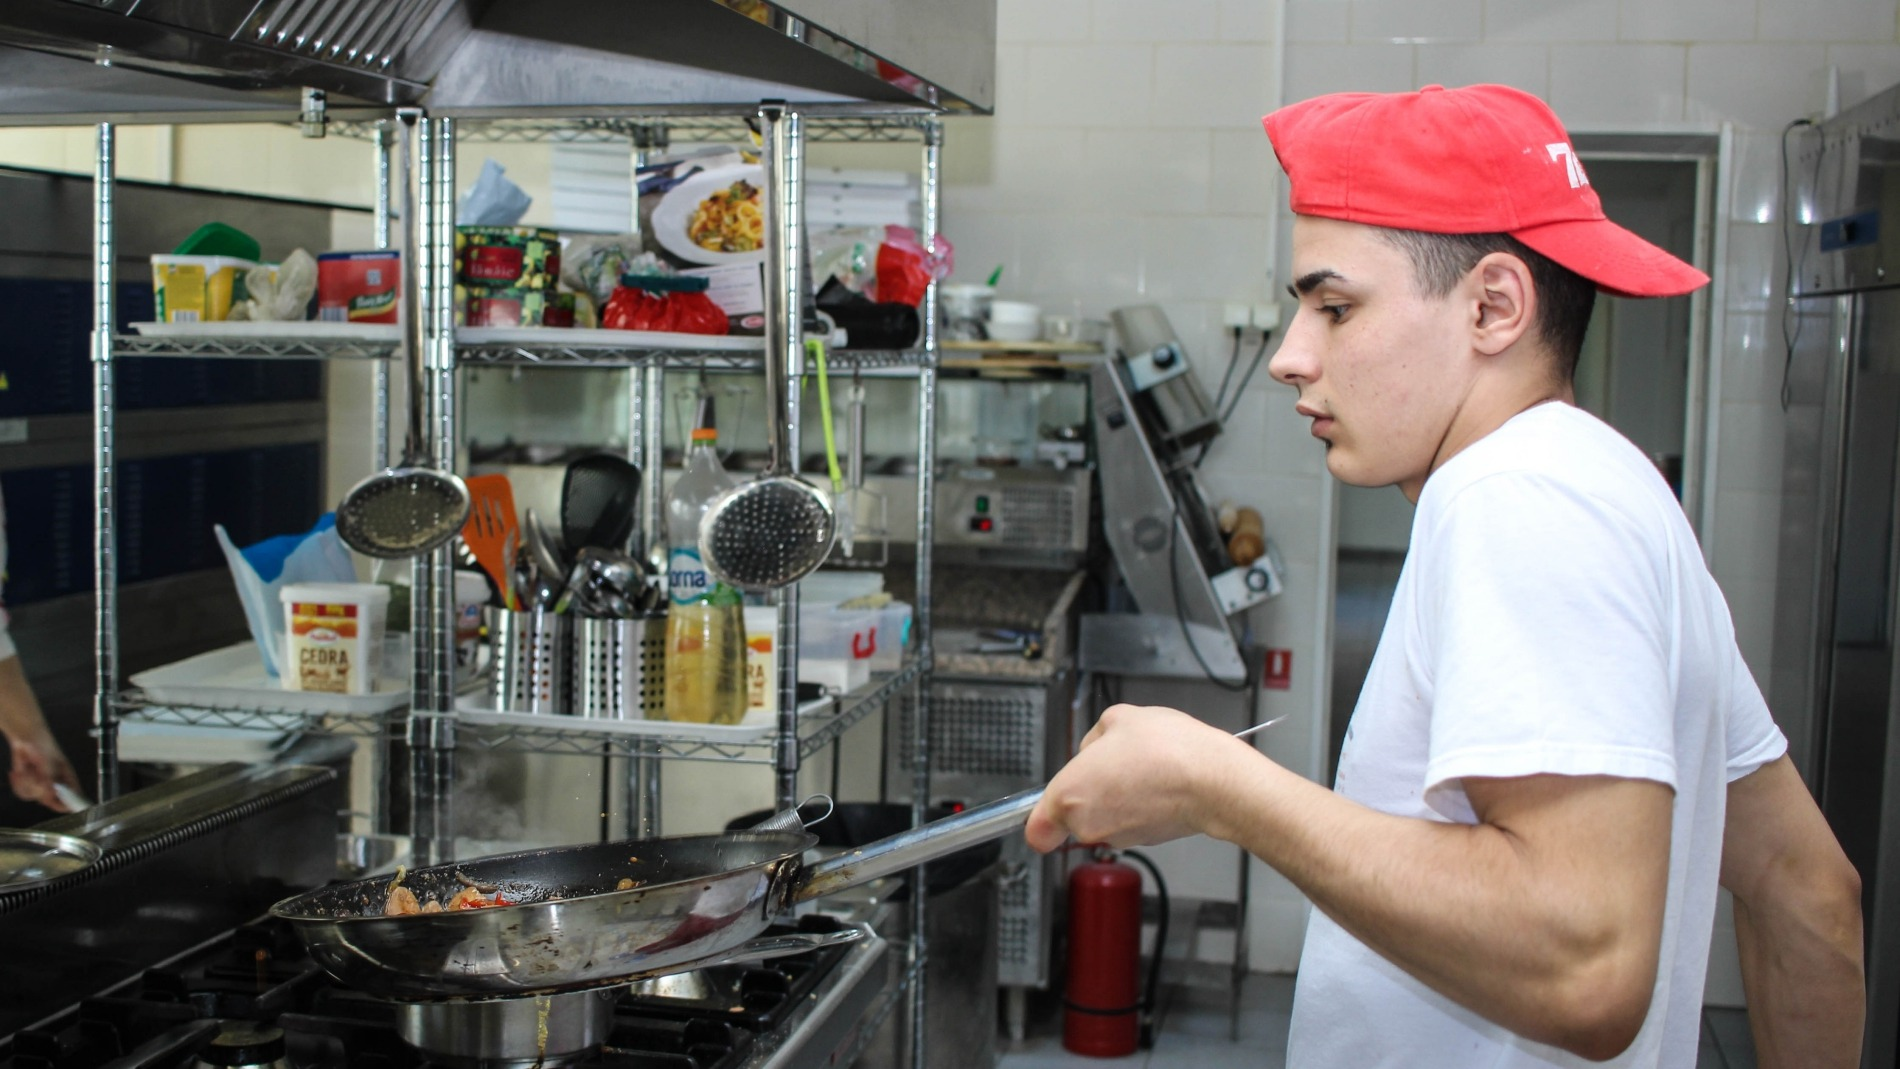 Young person cooking in a professional kitchen